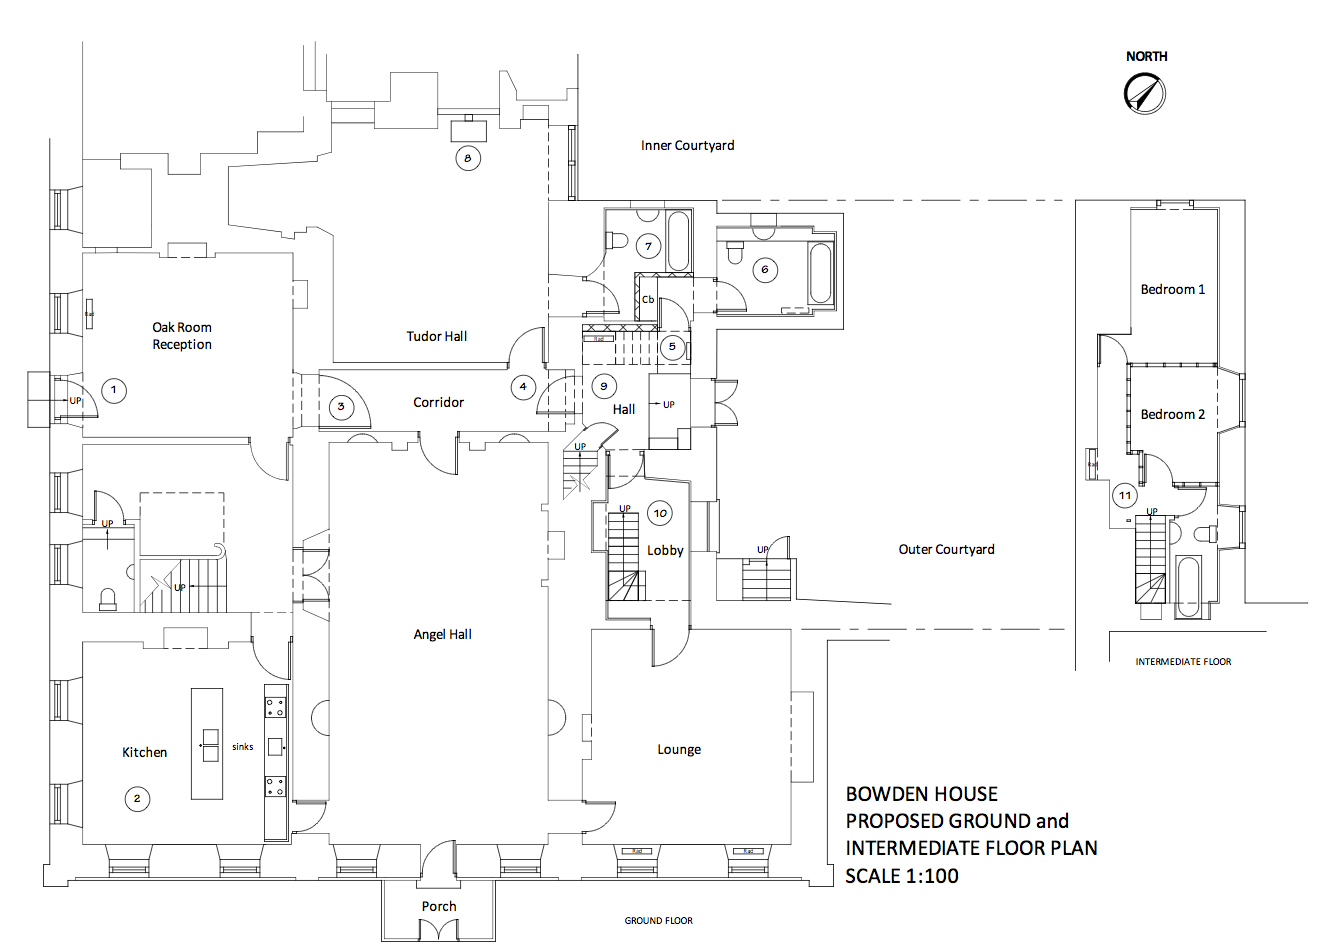 File:Bowden House Ground Floor Plan.png